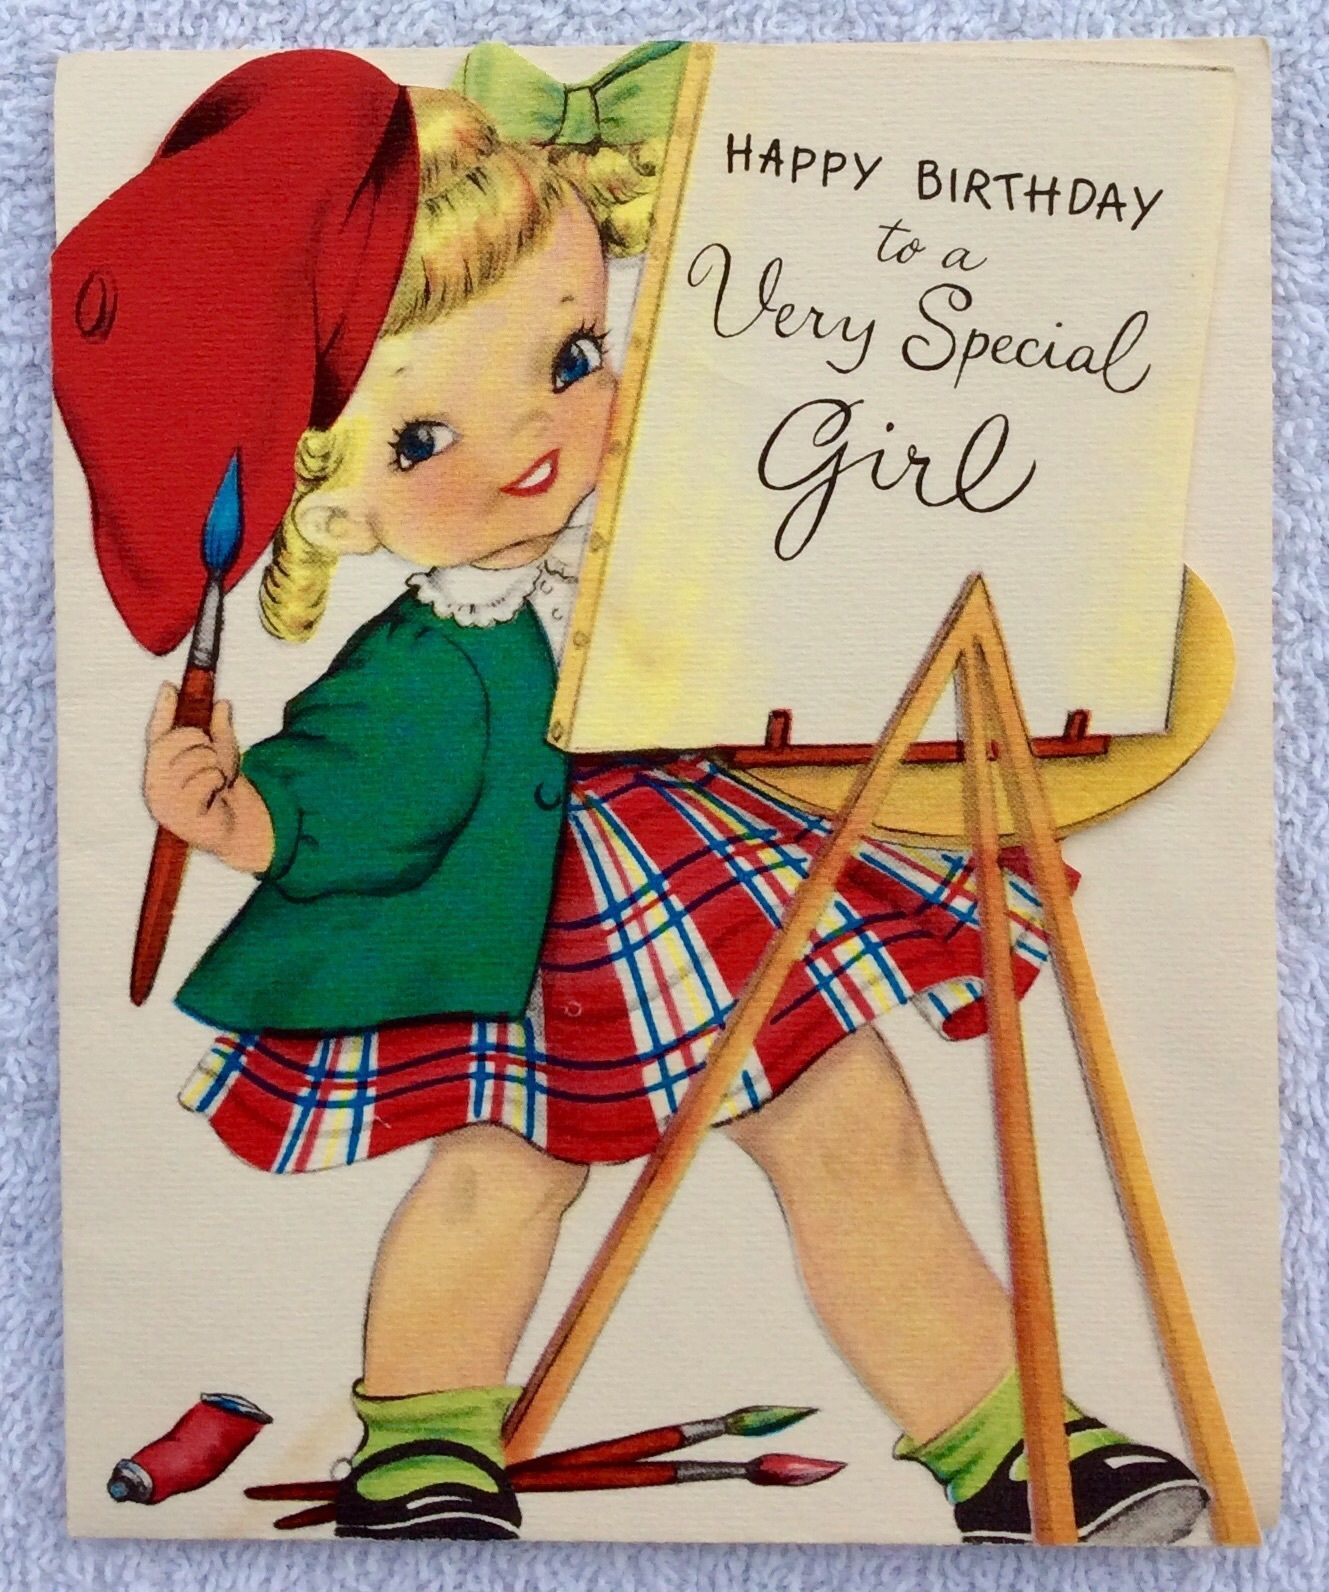 Old fashioned birthday greetings gallery greeting card examples cute scottish little girl painting easel baret 1950s vintage cute scottish little girl painting easel baret bookmarktalkfo Image collections